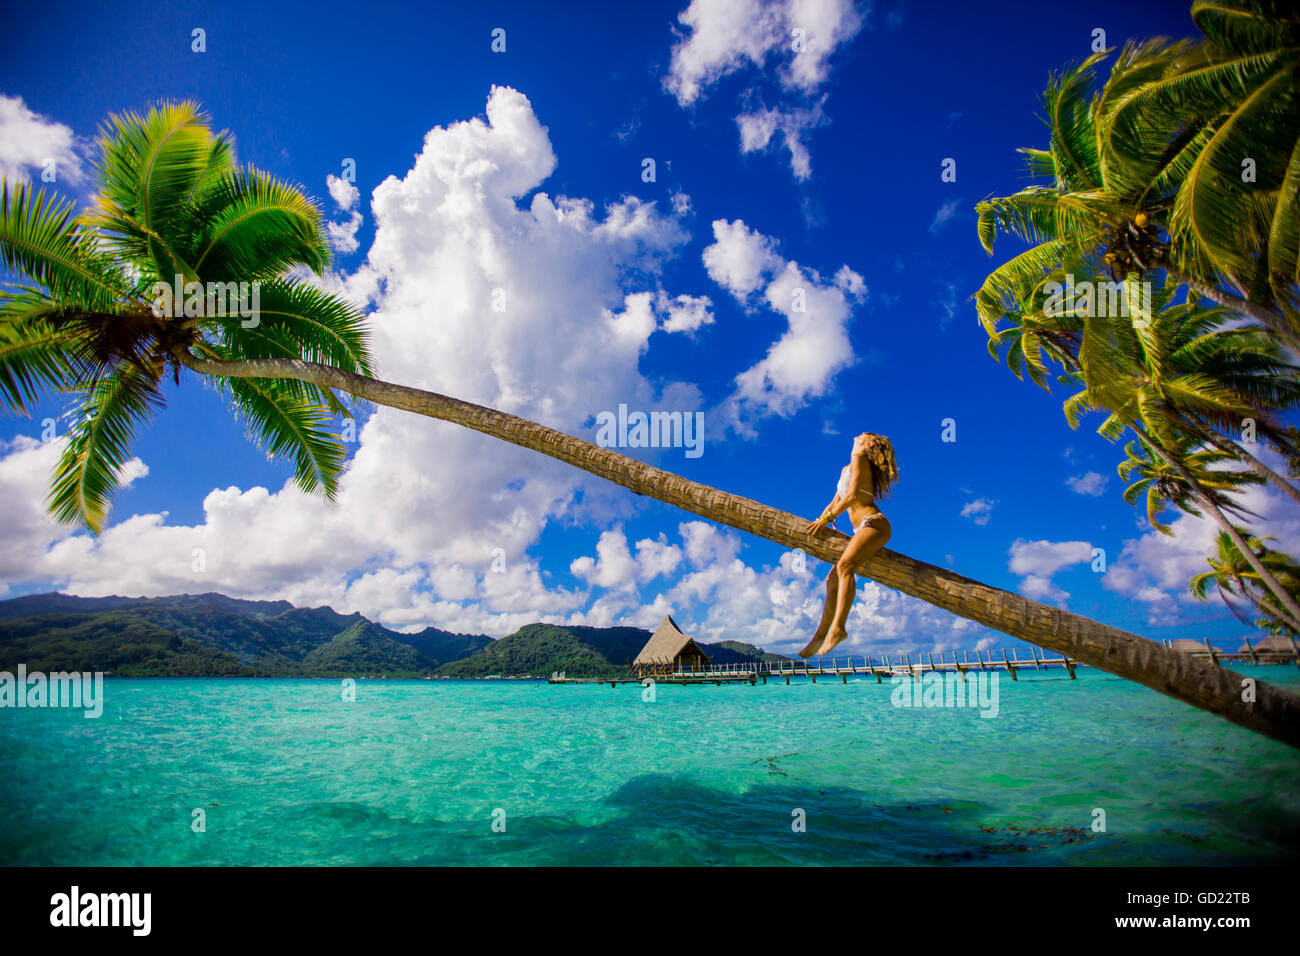 tahiti young girl french polynesia stockfotos tahiti young girl french polynesia bilder alamy. Black Bedroom Furniture Sets. Home Design Ideas